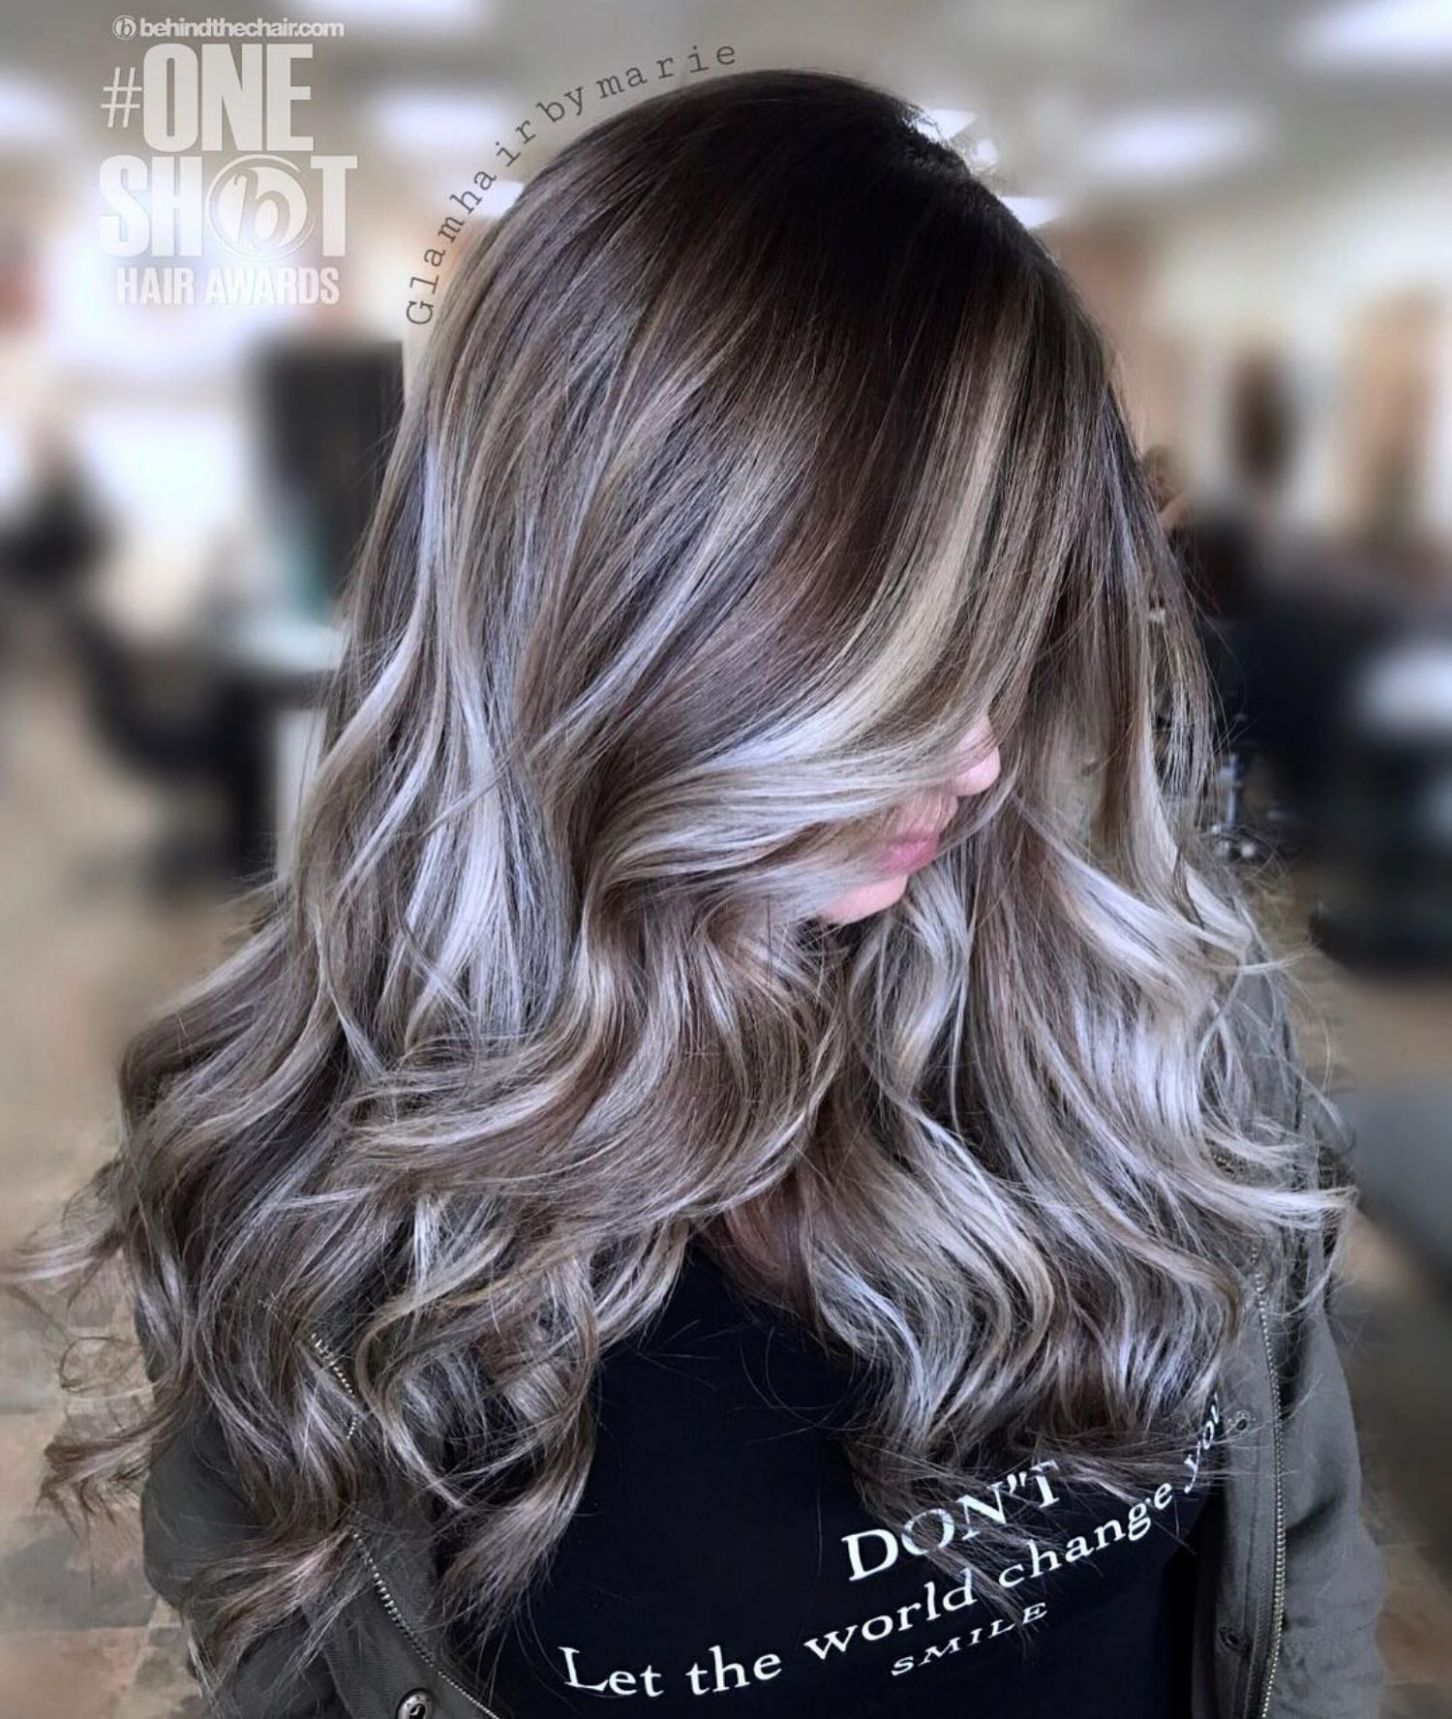 Synthetic Clip-in One Piece Hair Extensions & Wigs Ambitious Doris Beauty Single 50 Cm Clip In One Piece Hair Extensions Colored Synthetic Long Straight Ombre Grey Blonde Red Hair Pieces